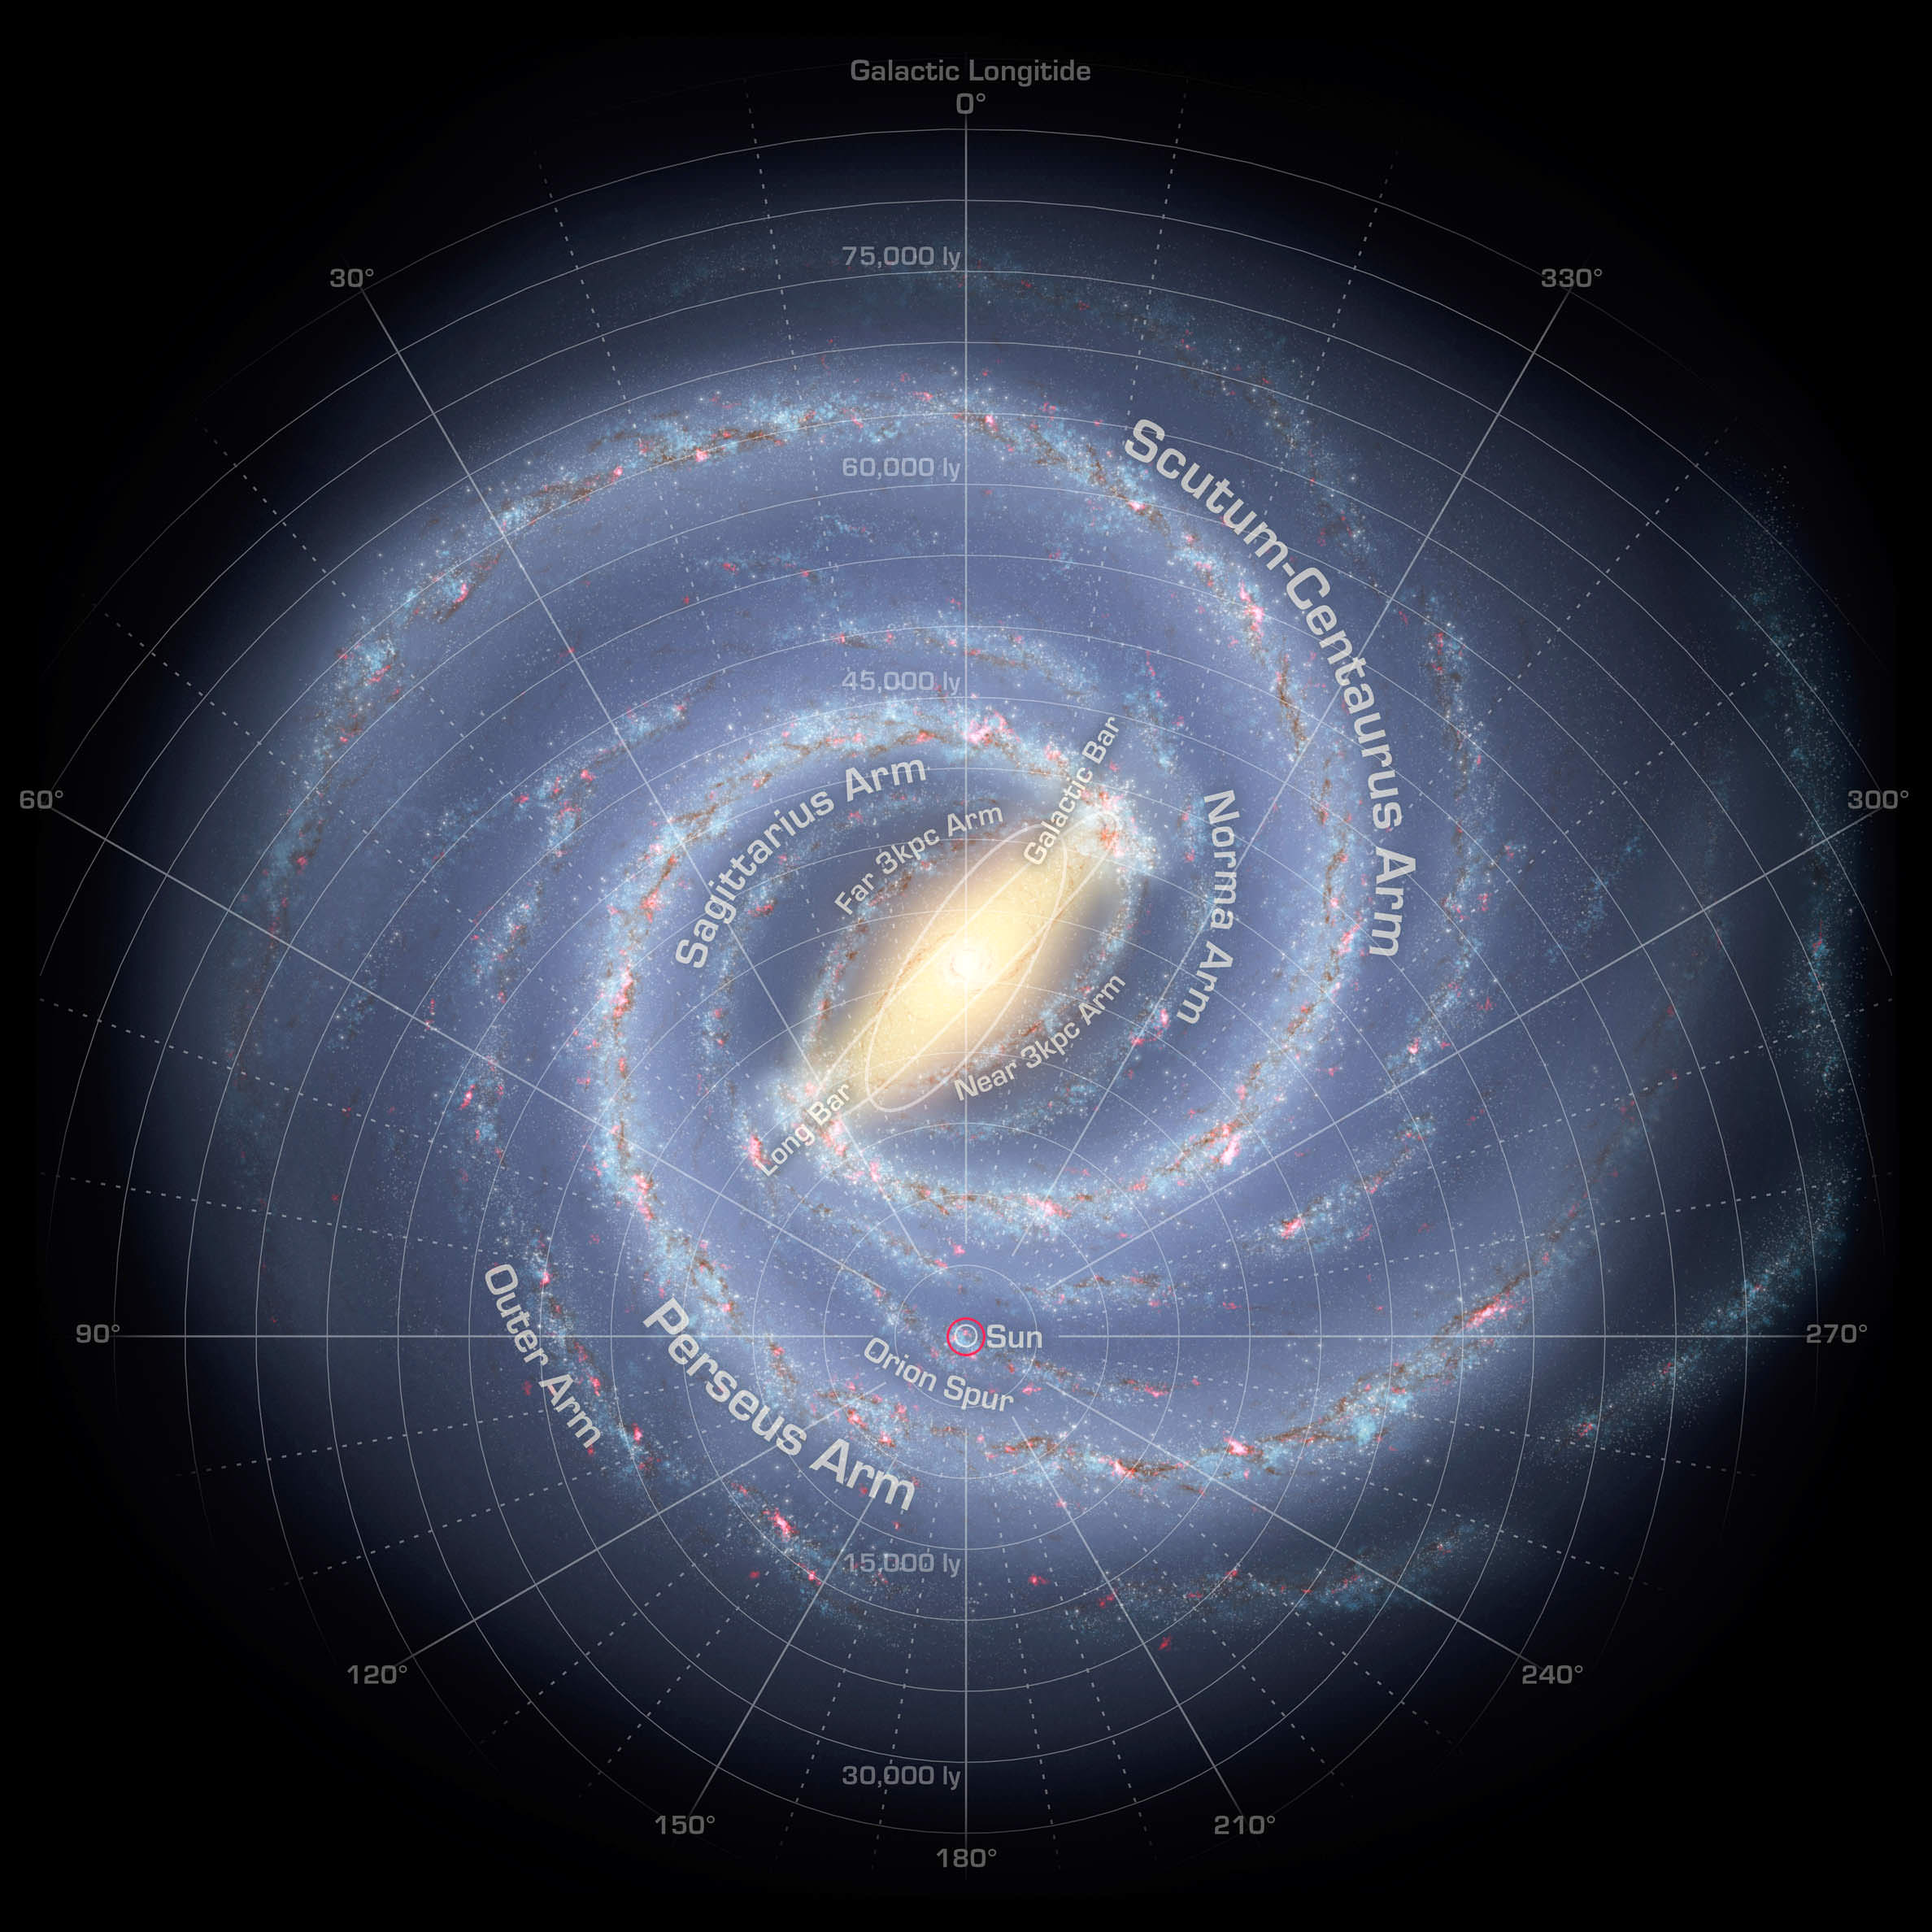 The Milky Way is a spiral galaxy with several prominent ...